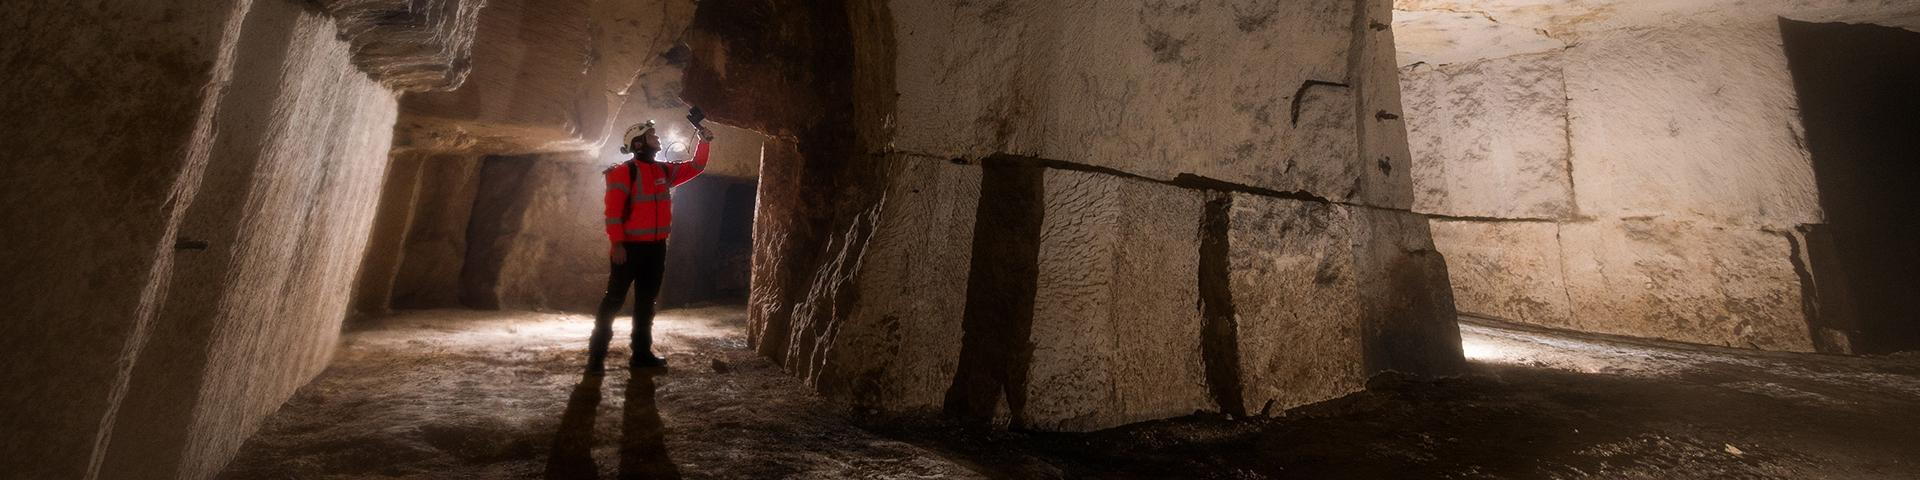 3D scanning in a former underground quarry, Aisne